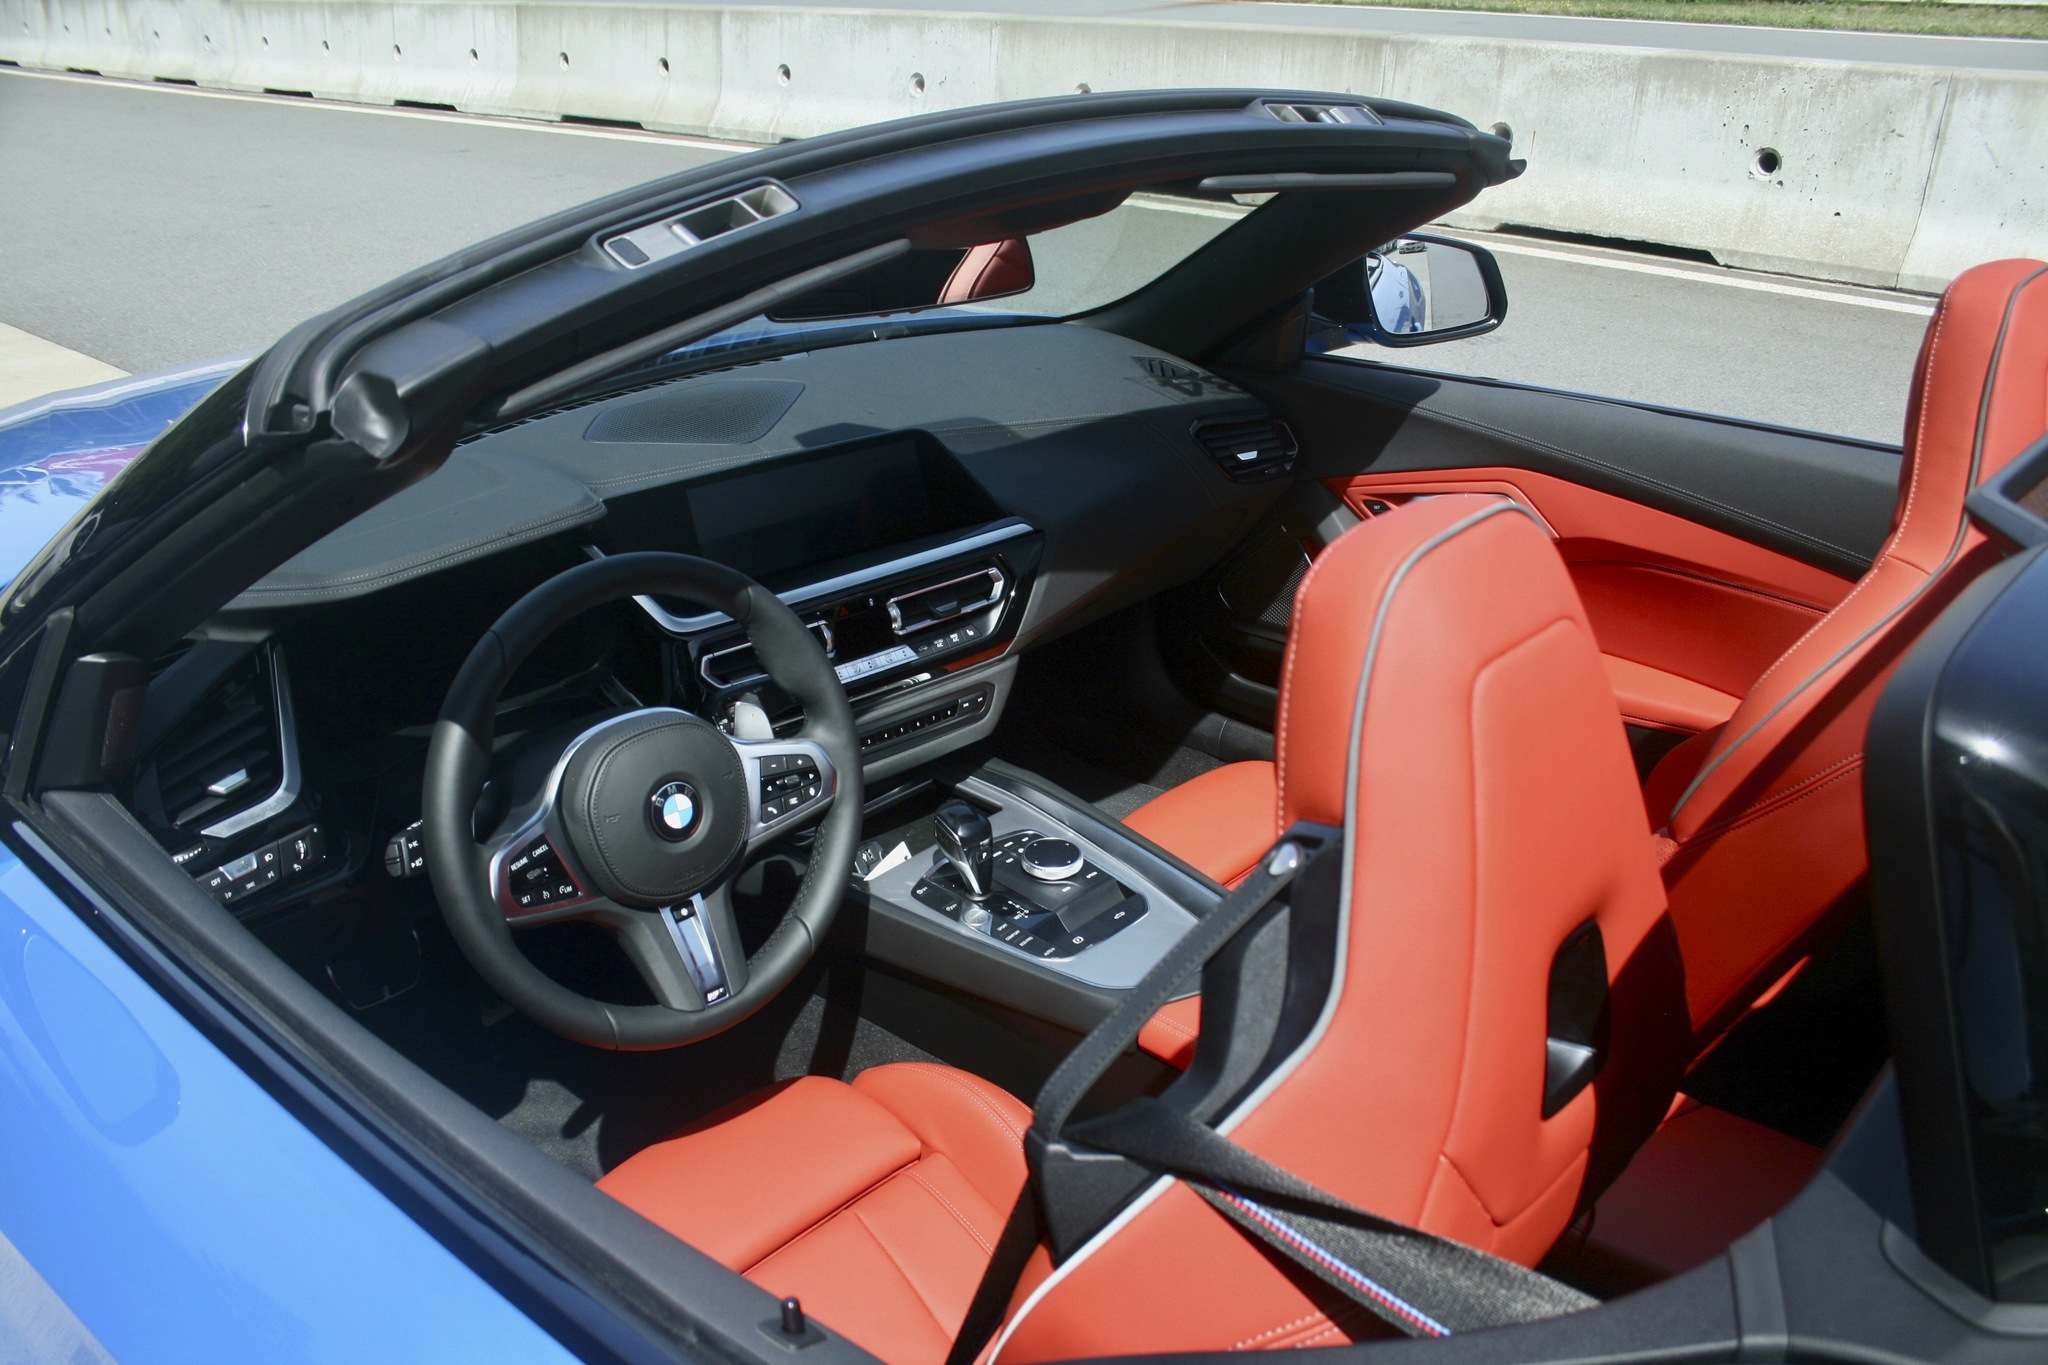 Kelly Taylor / Winnipeg Free PressThe BMW Z4 is available in two varieties, the Z4 30i and a more powerful Z4 M40i.